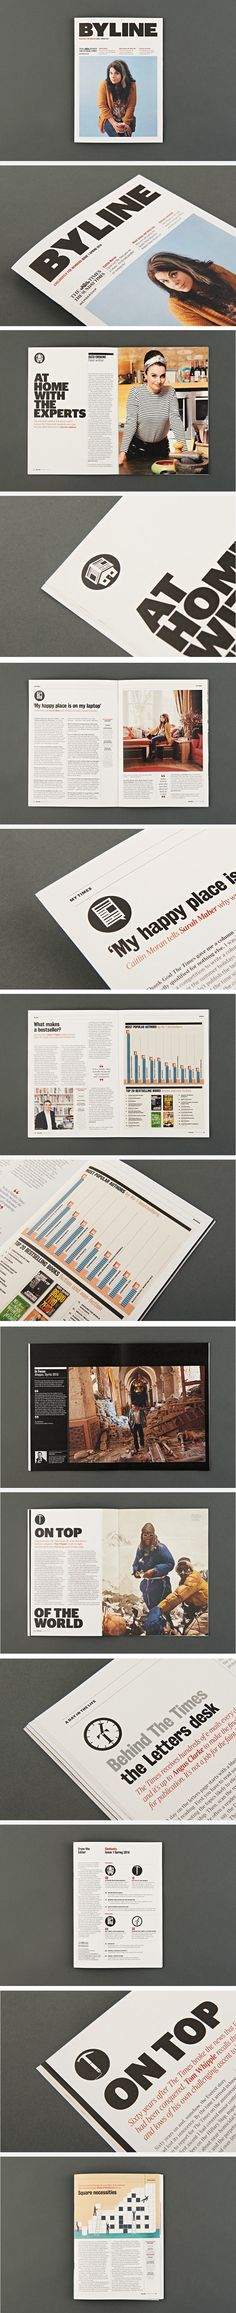 Byline, new members magazine for Times subscribers